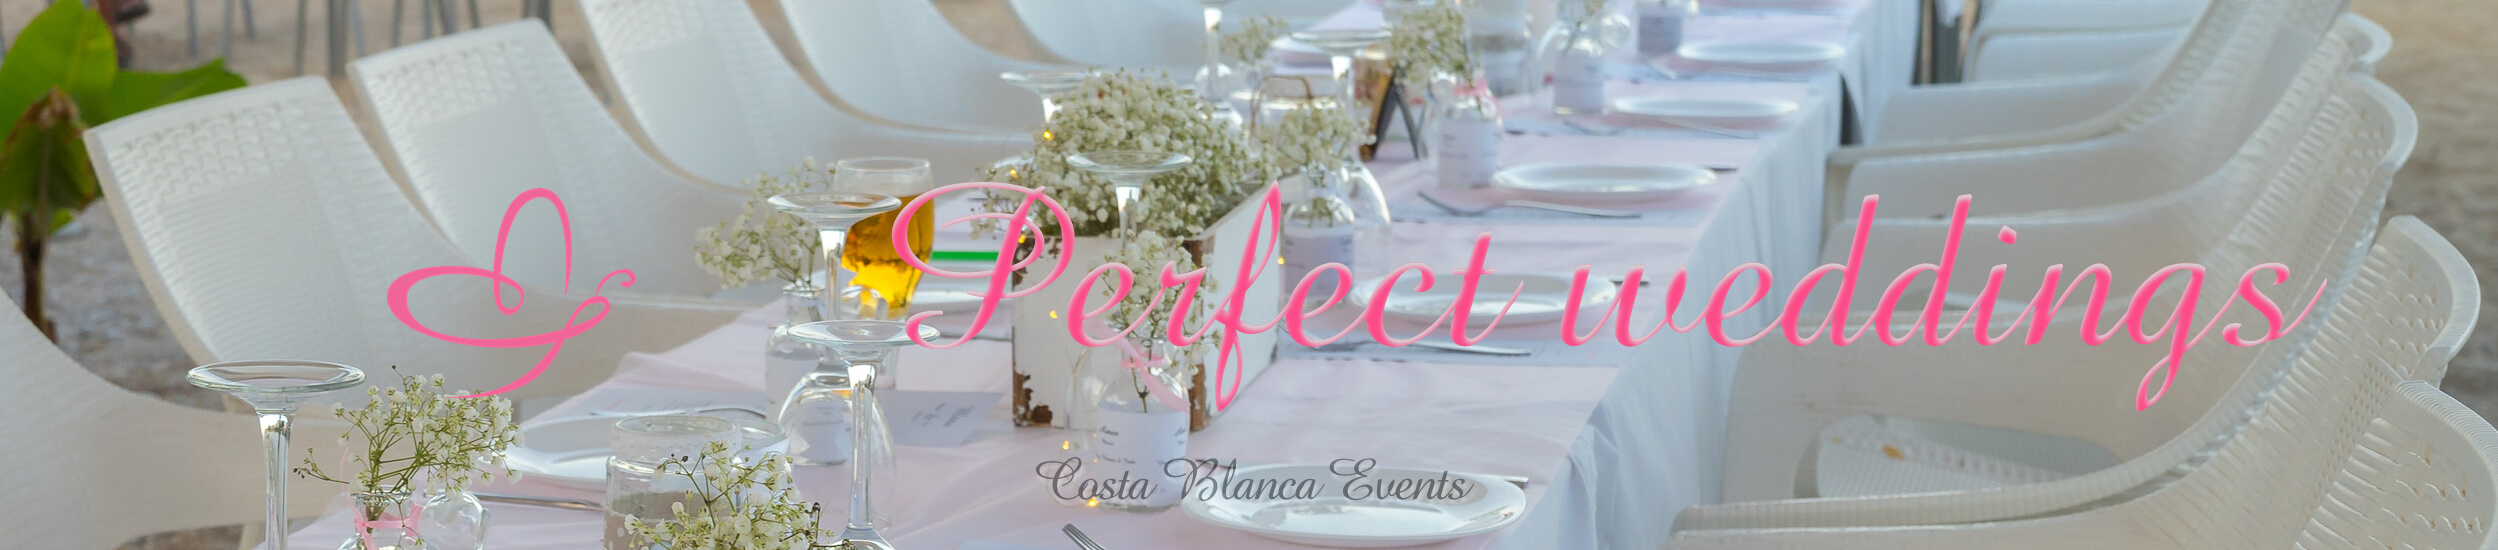 Moodbook image of a my perfect wedding in Spain arrangement